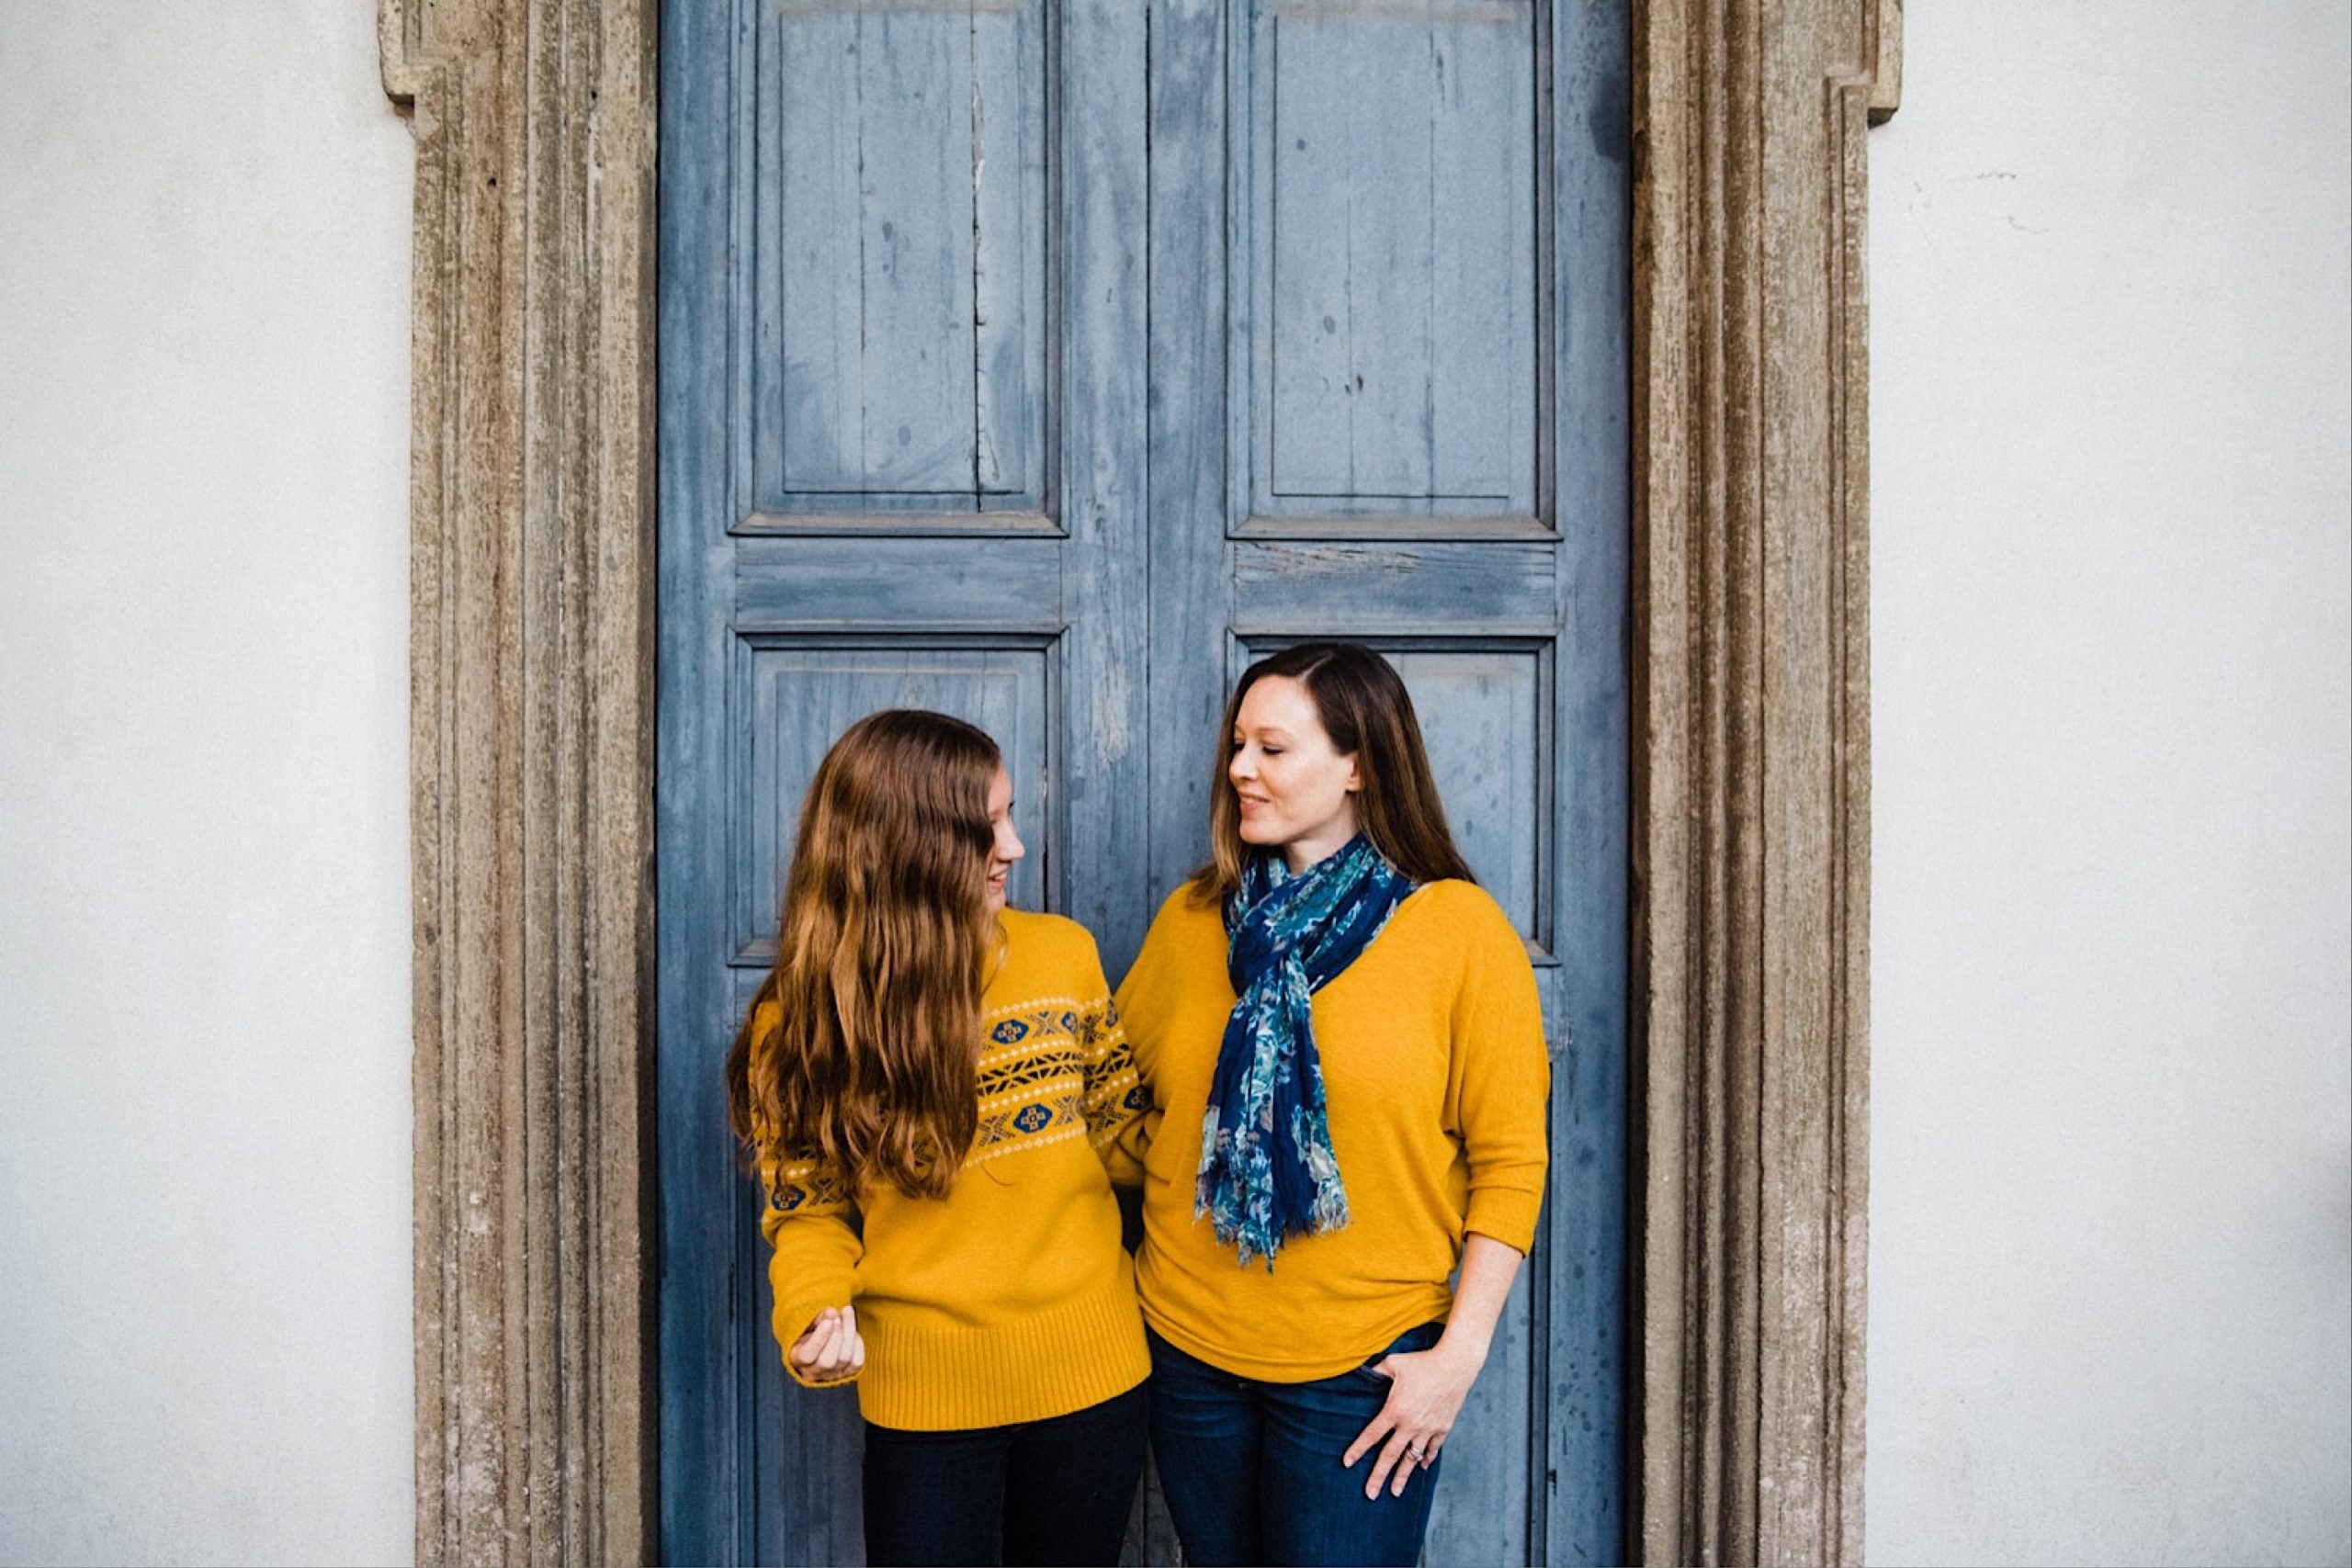 Portrait photo of a mother and daughter standing together, smiling. They both wear yellow sweaters and are standing in front of a blue door.